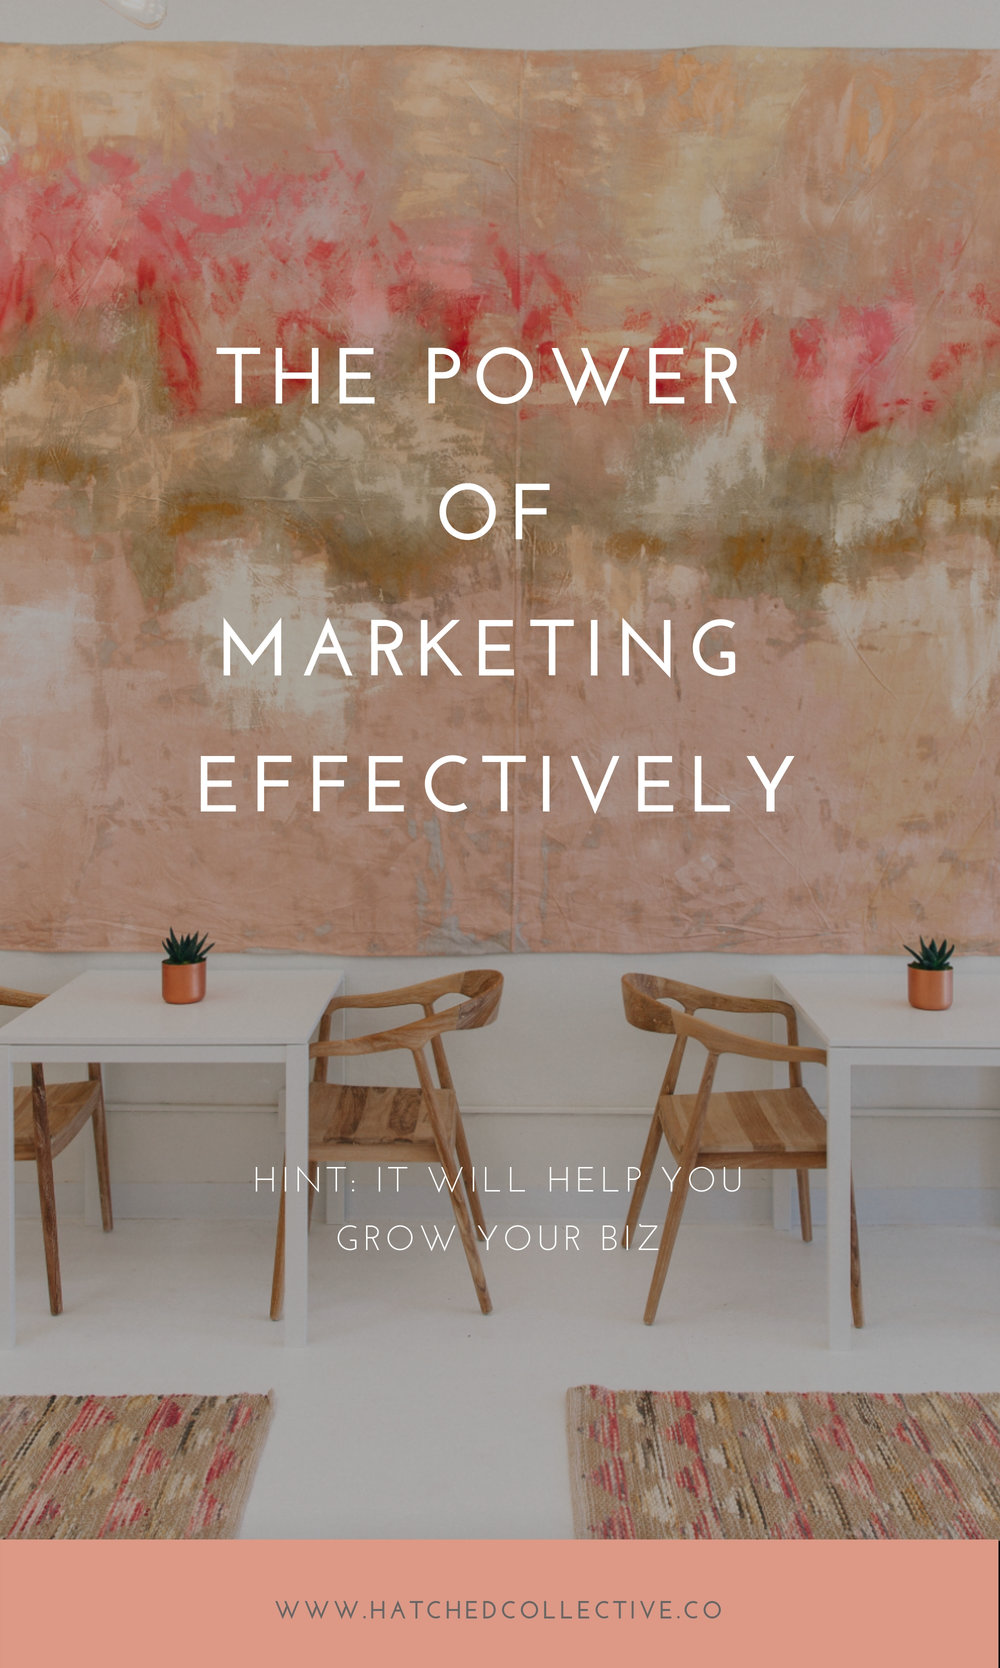 The Power of Marketing Effectively - Brand Digital Marketer - Lyndsey Clements